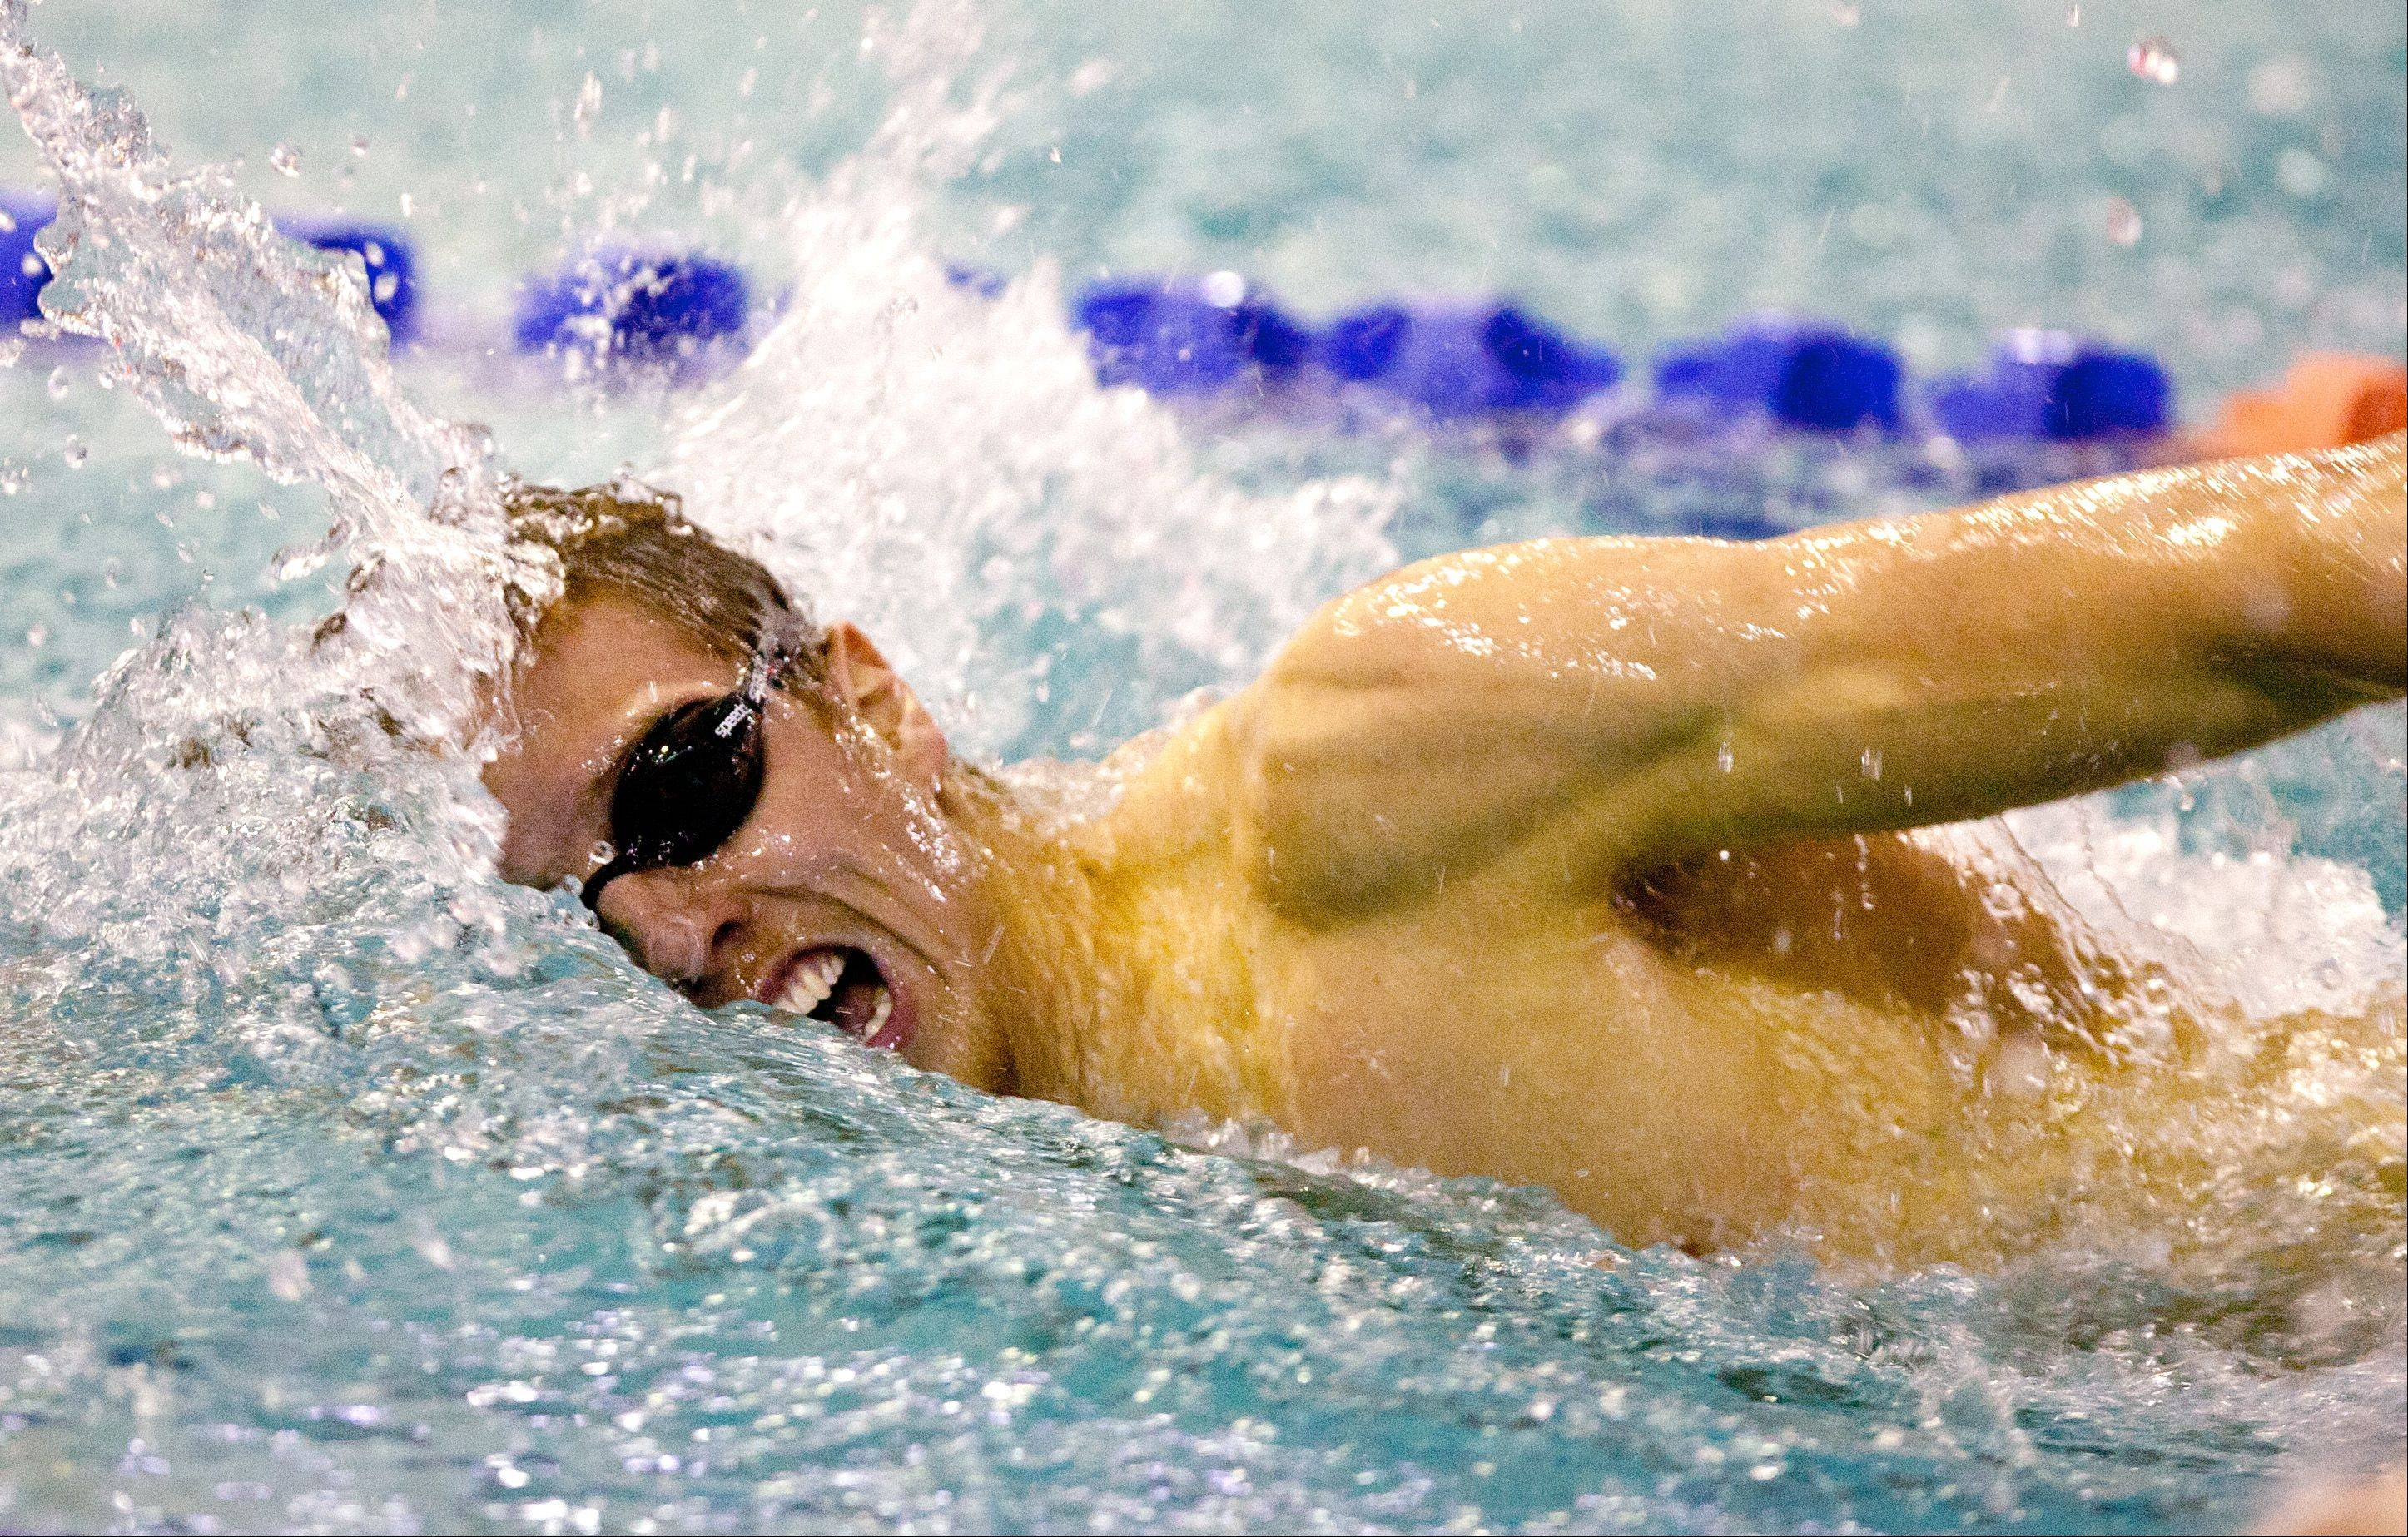 Sam Hiller, of Naperville North High School, swims the 200 yard freestyle, during the DVC Swimming Conference Championship held at Naperville North High School.